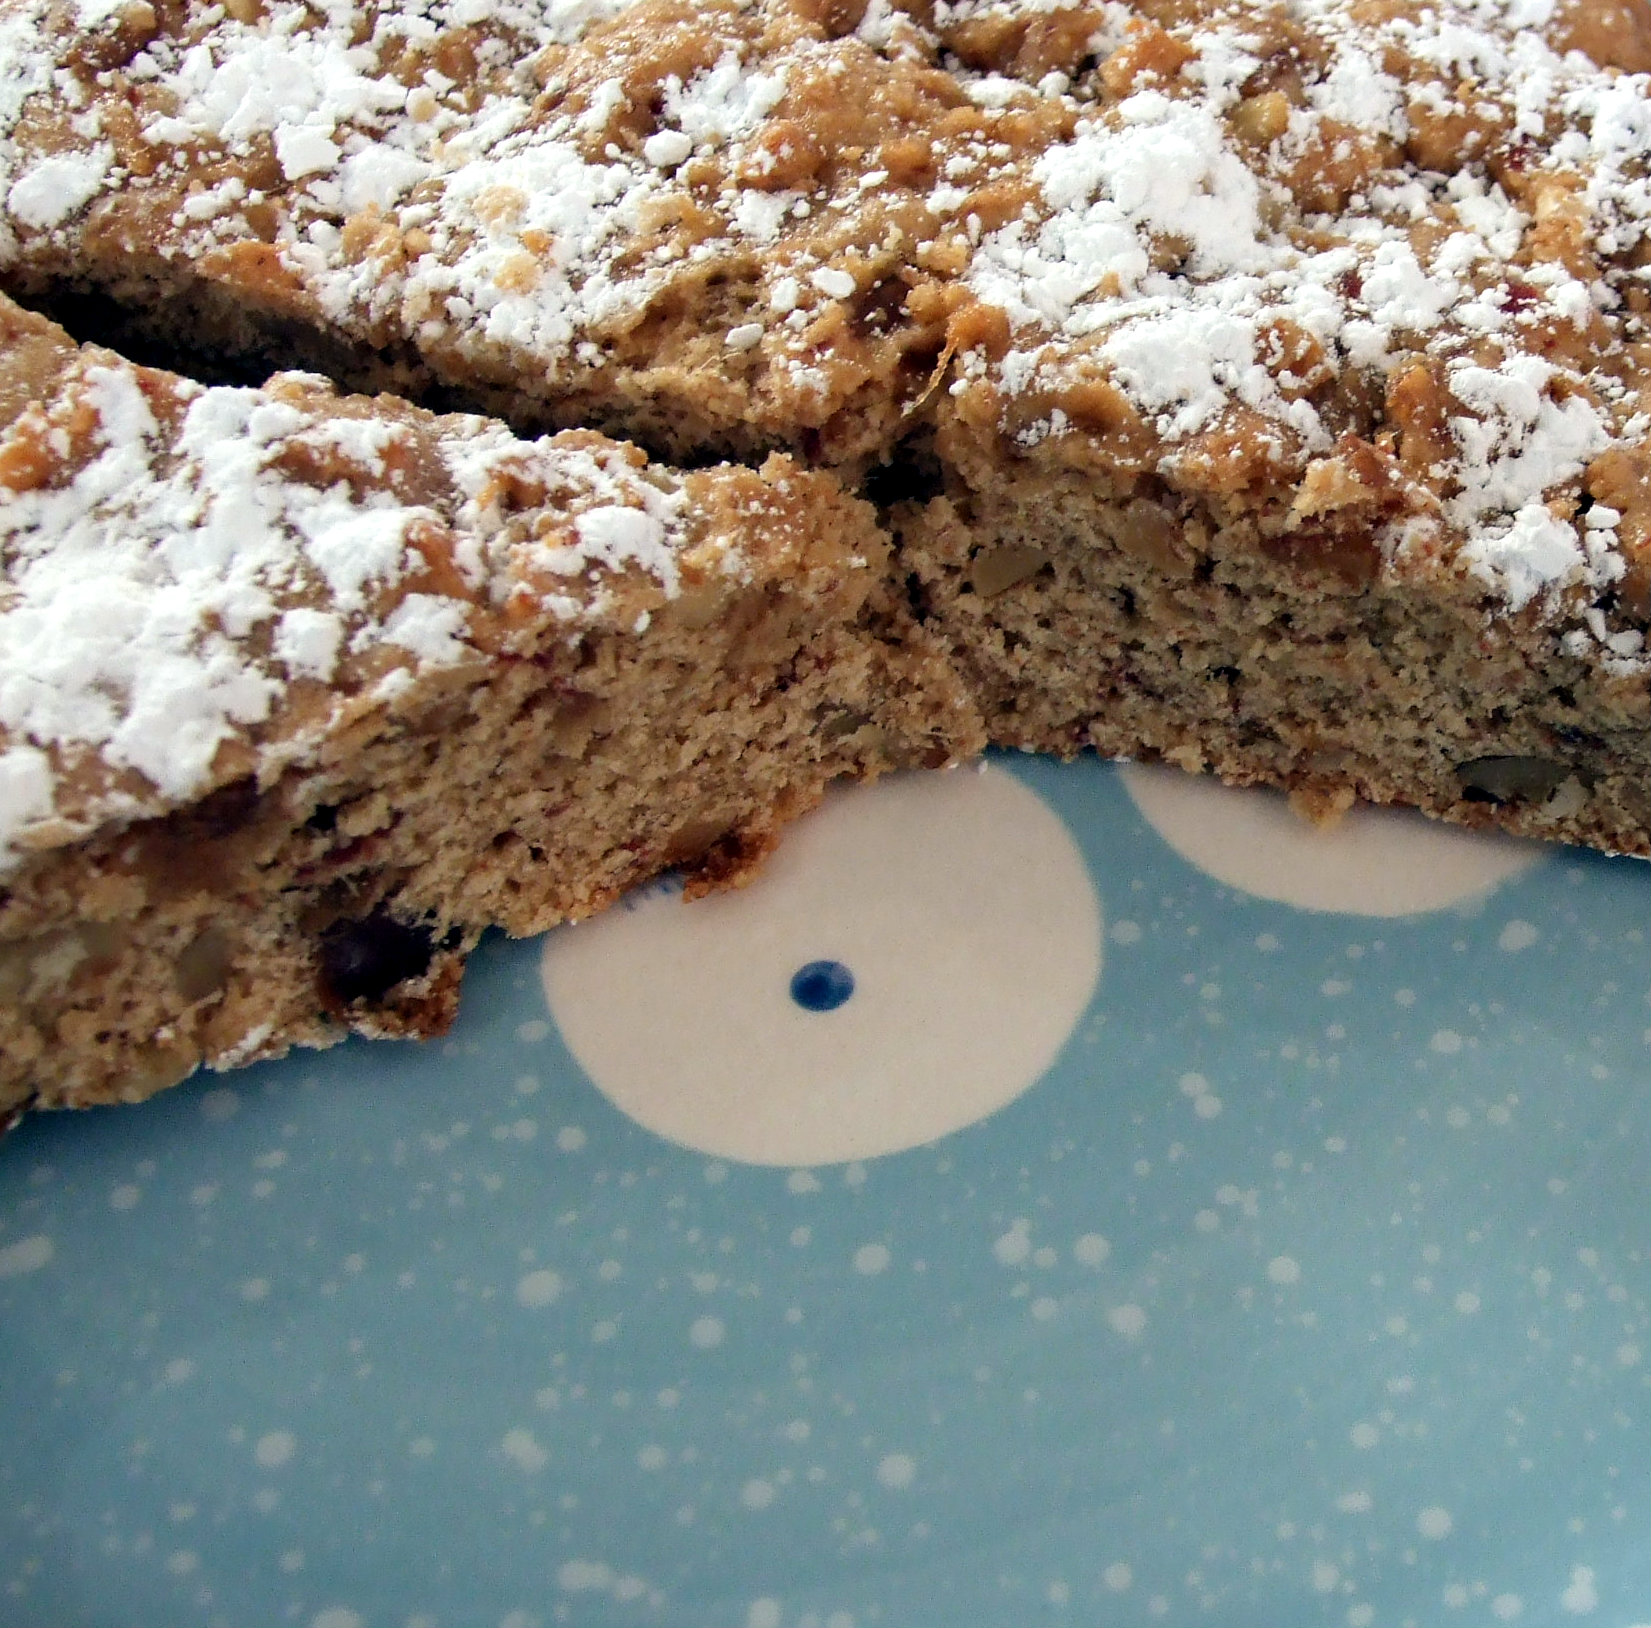 maple_walnut_date_cake.jpg